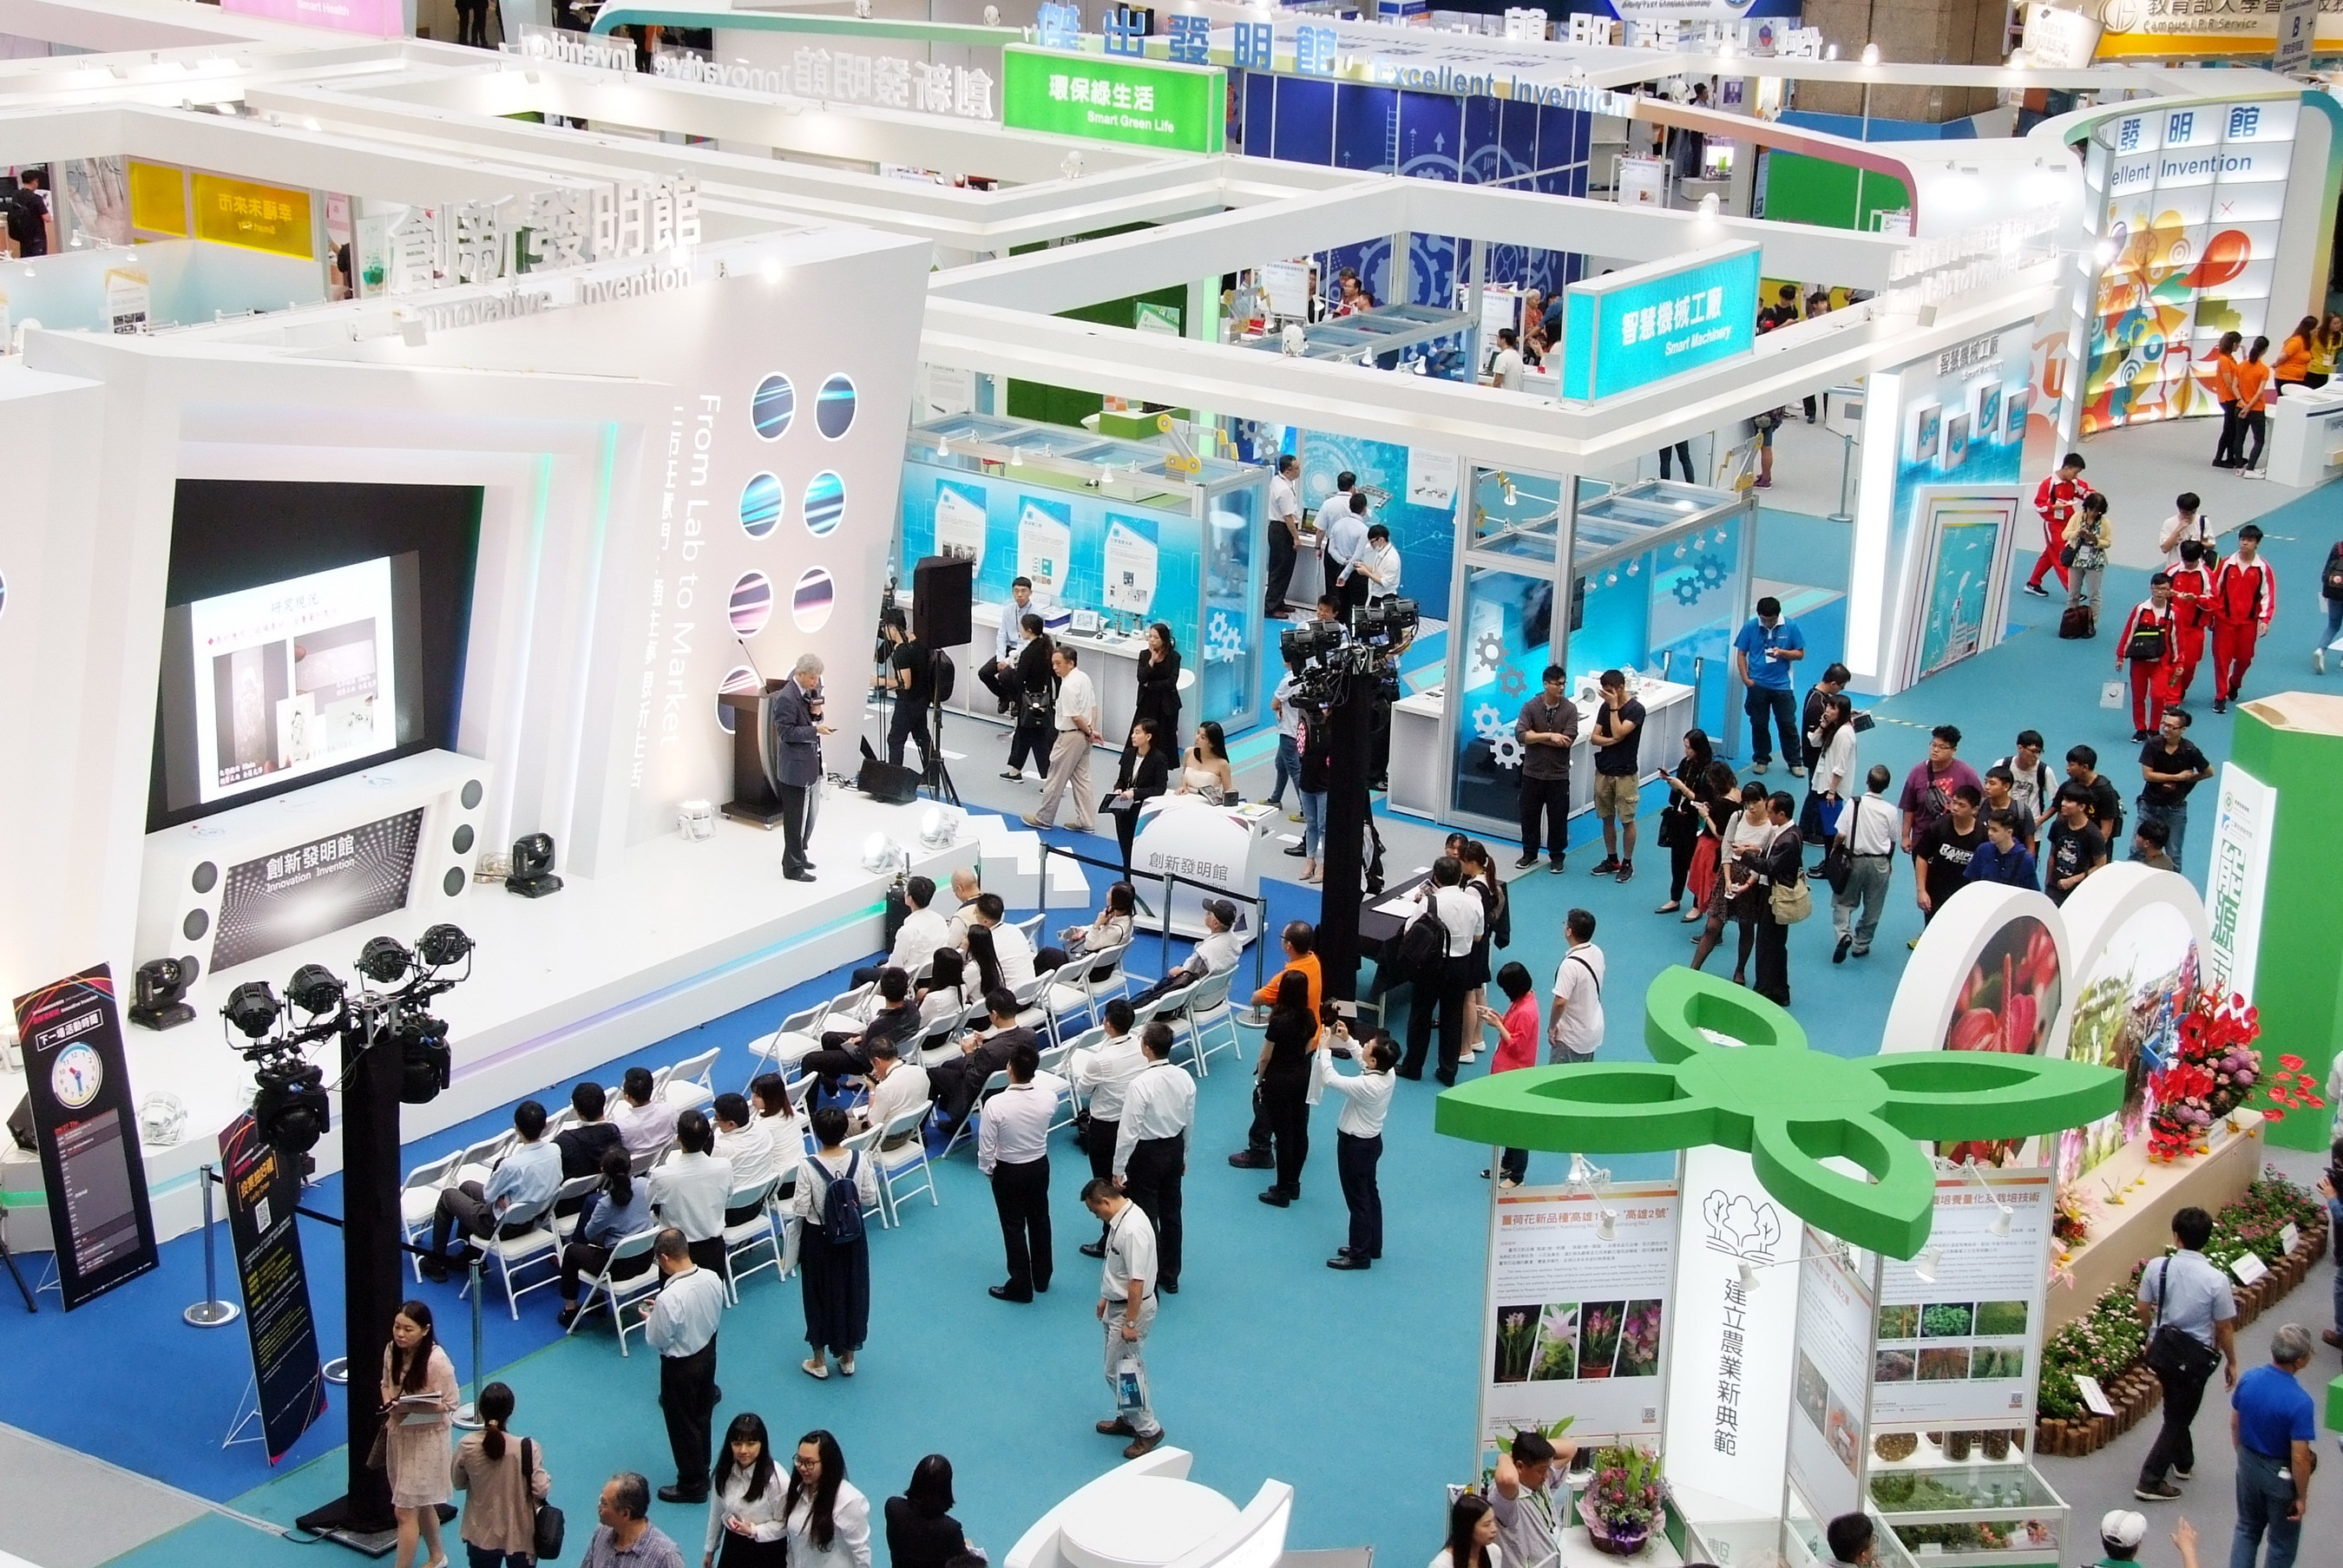 The Innovative Invention Pavilion at the Taiwan Innotech Expo (TIE) has 59 new technologies which will be on display and seek for technology transfers and commercialization opportunities.